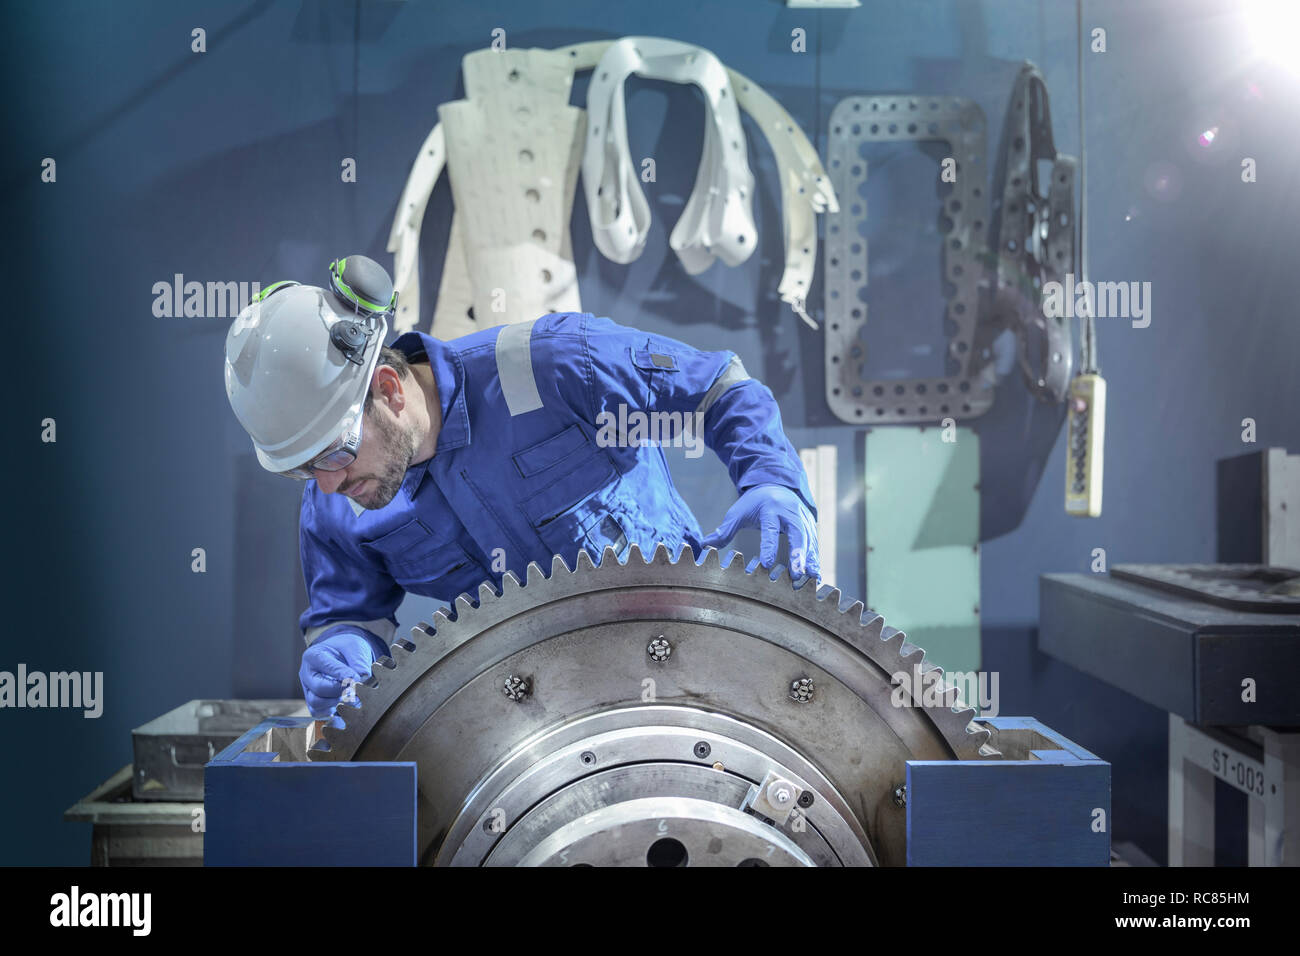 Engineer inspecting large gear during outage in nuclear power station Stock Photo